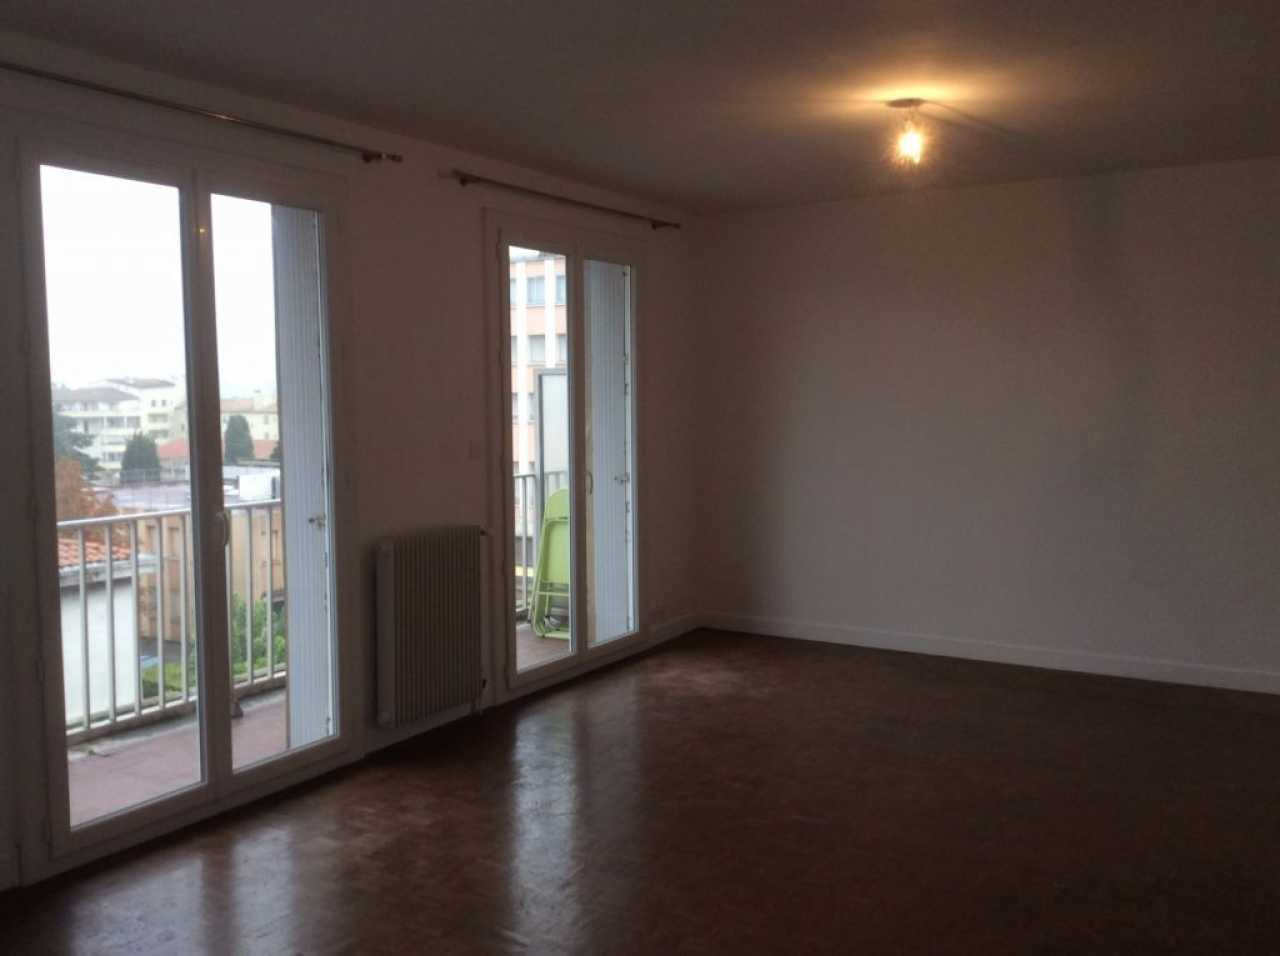 Apartment CARCASSONNE | 590 € / month